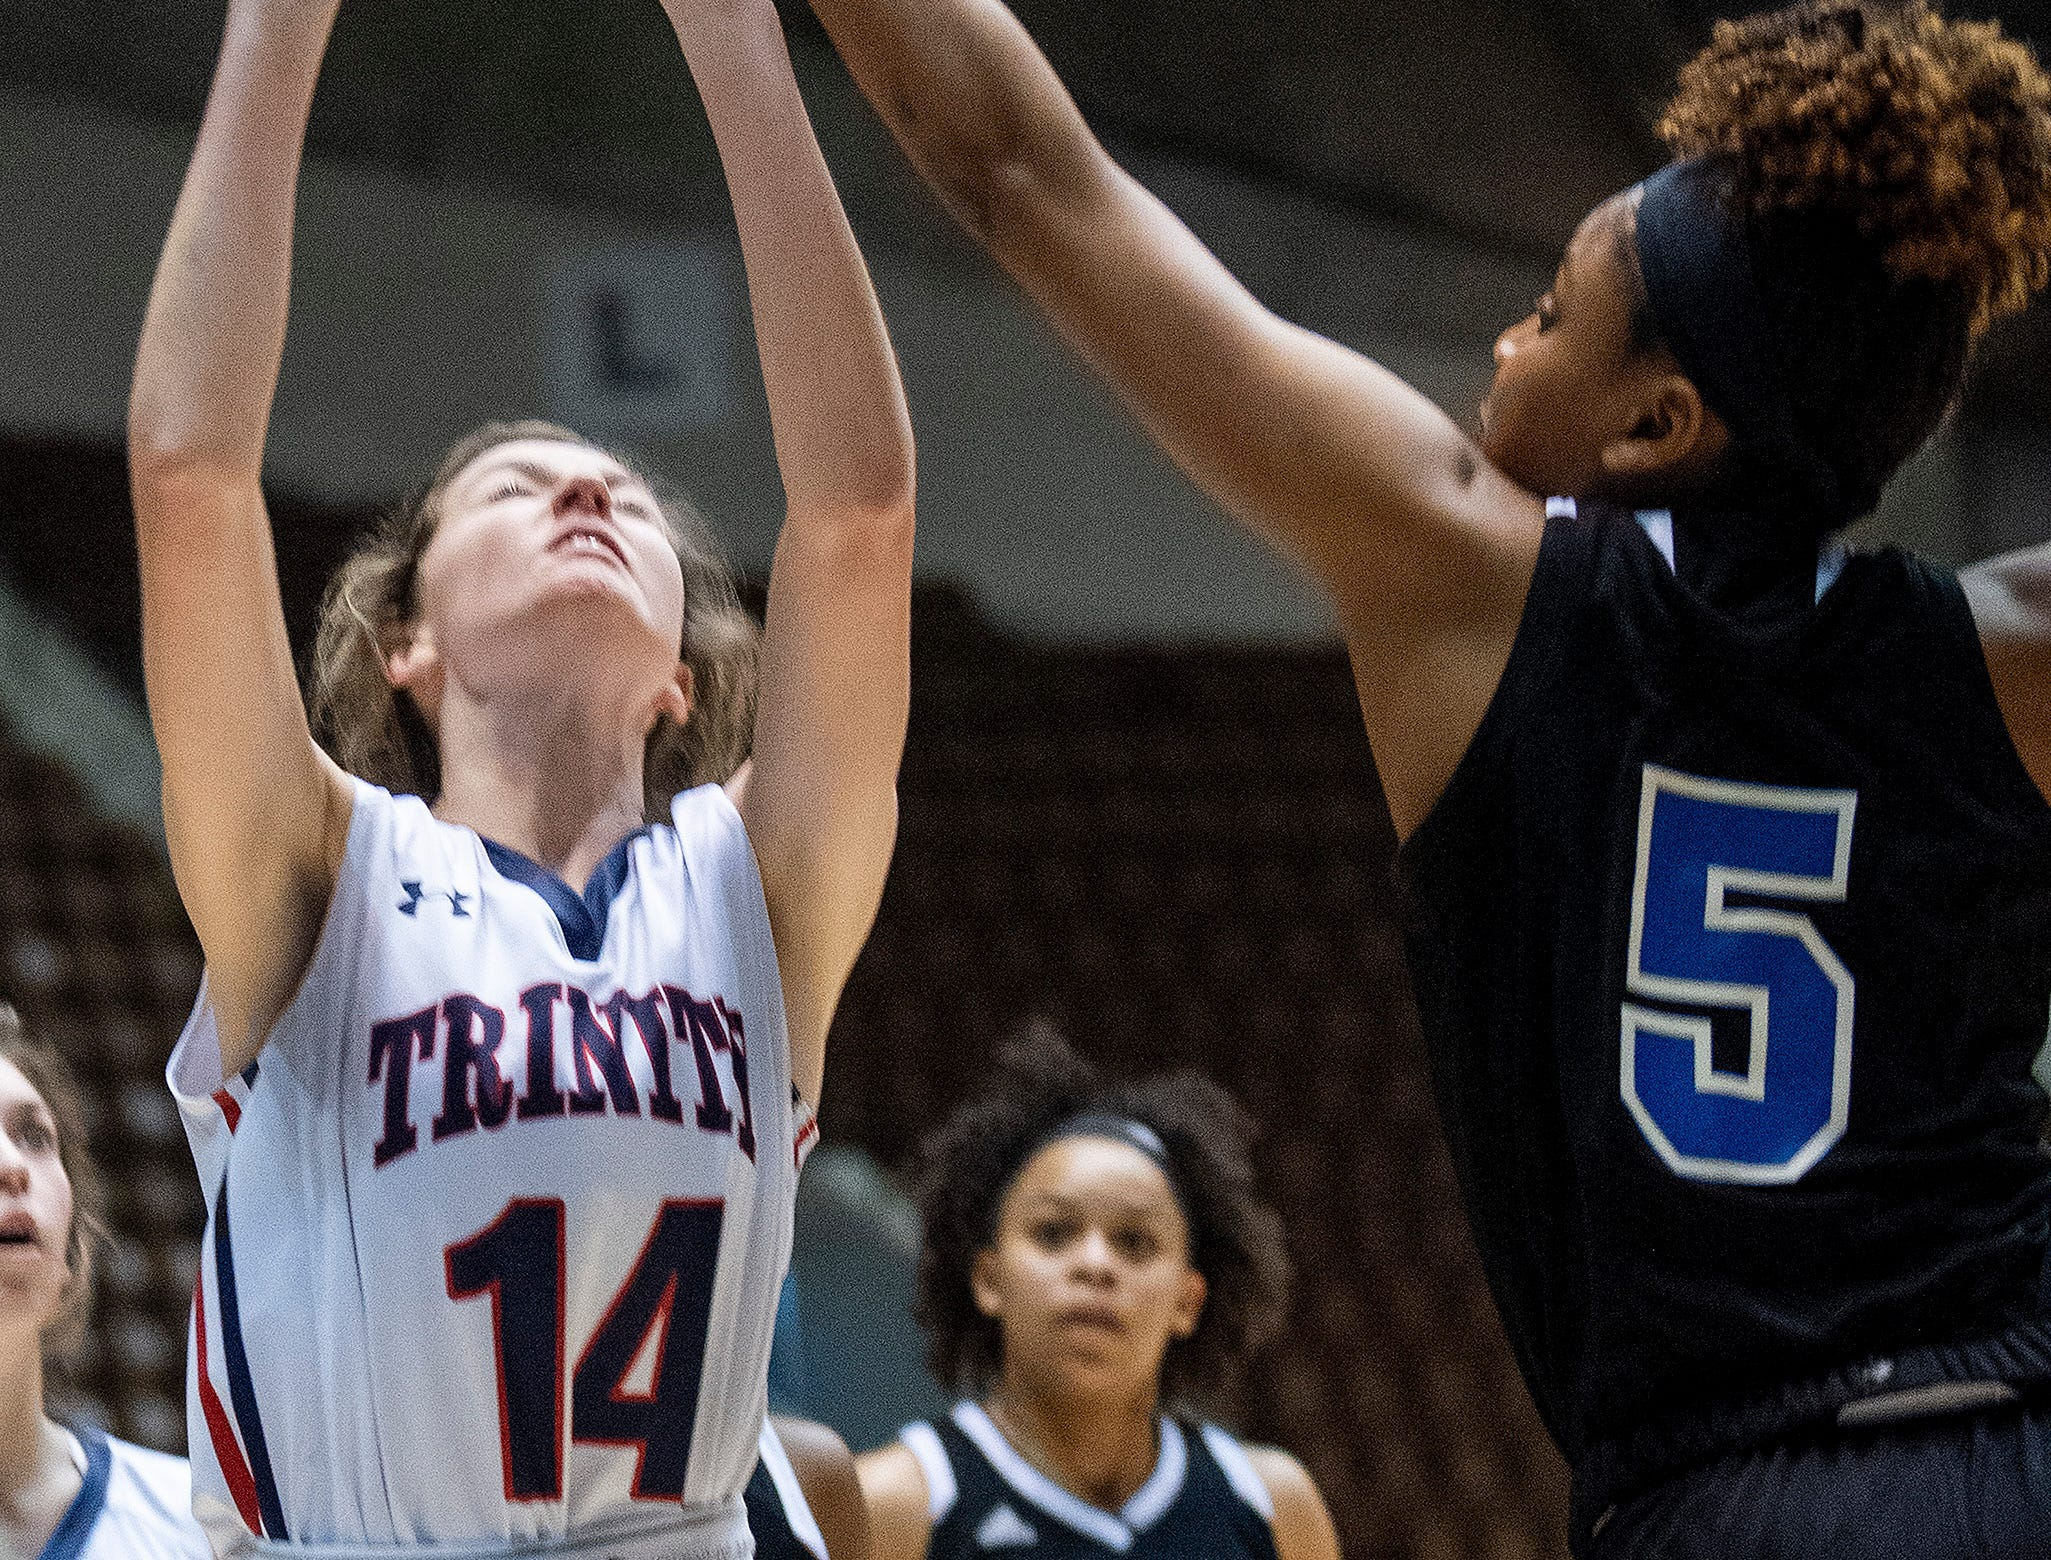 Childersburg's Yamaree Gaddis blocks the shot of Trinity's Kenslee Harrison in AHSAA Regional action at Garrett Coliseum in Montgomery, Ala., on Monday February 18, 2019.